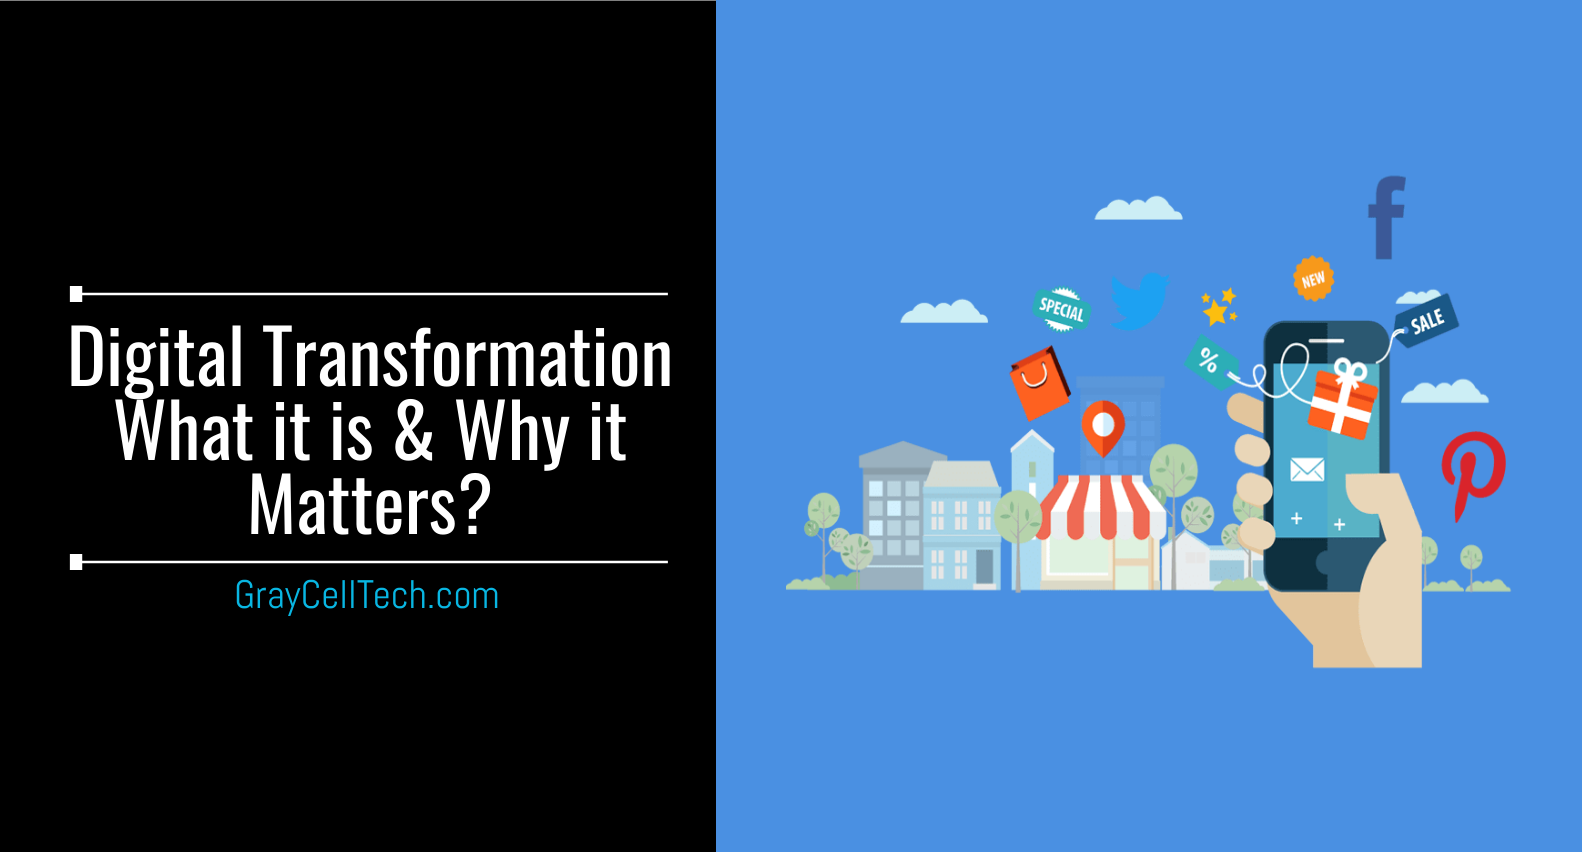 Digital Transformation - What it is and why it matters?